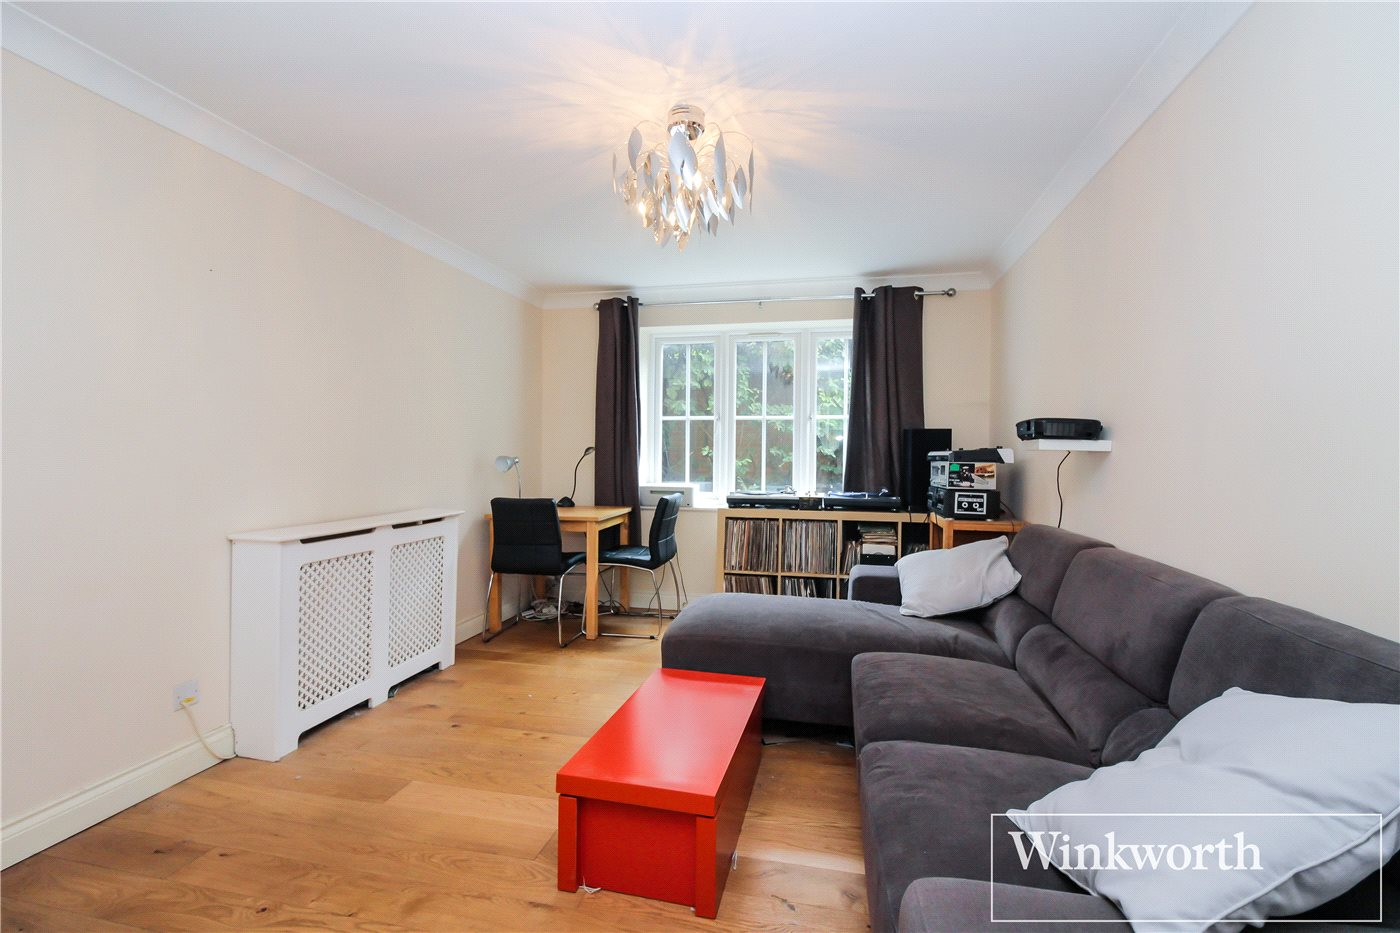 2 Bedrooms Flat for sale in Holt Close, Elstree, Hertfordshire, WD6